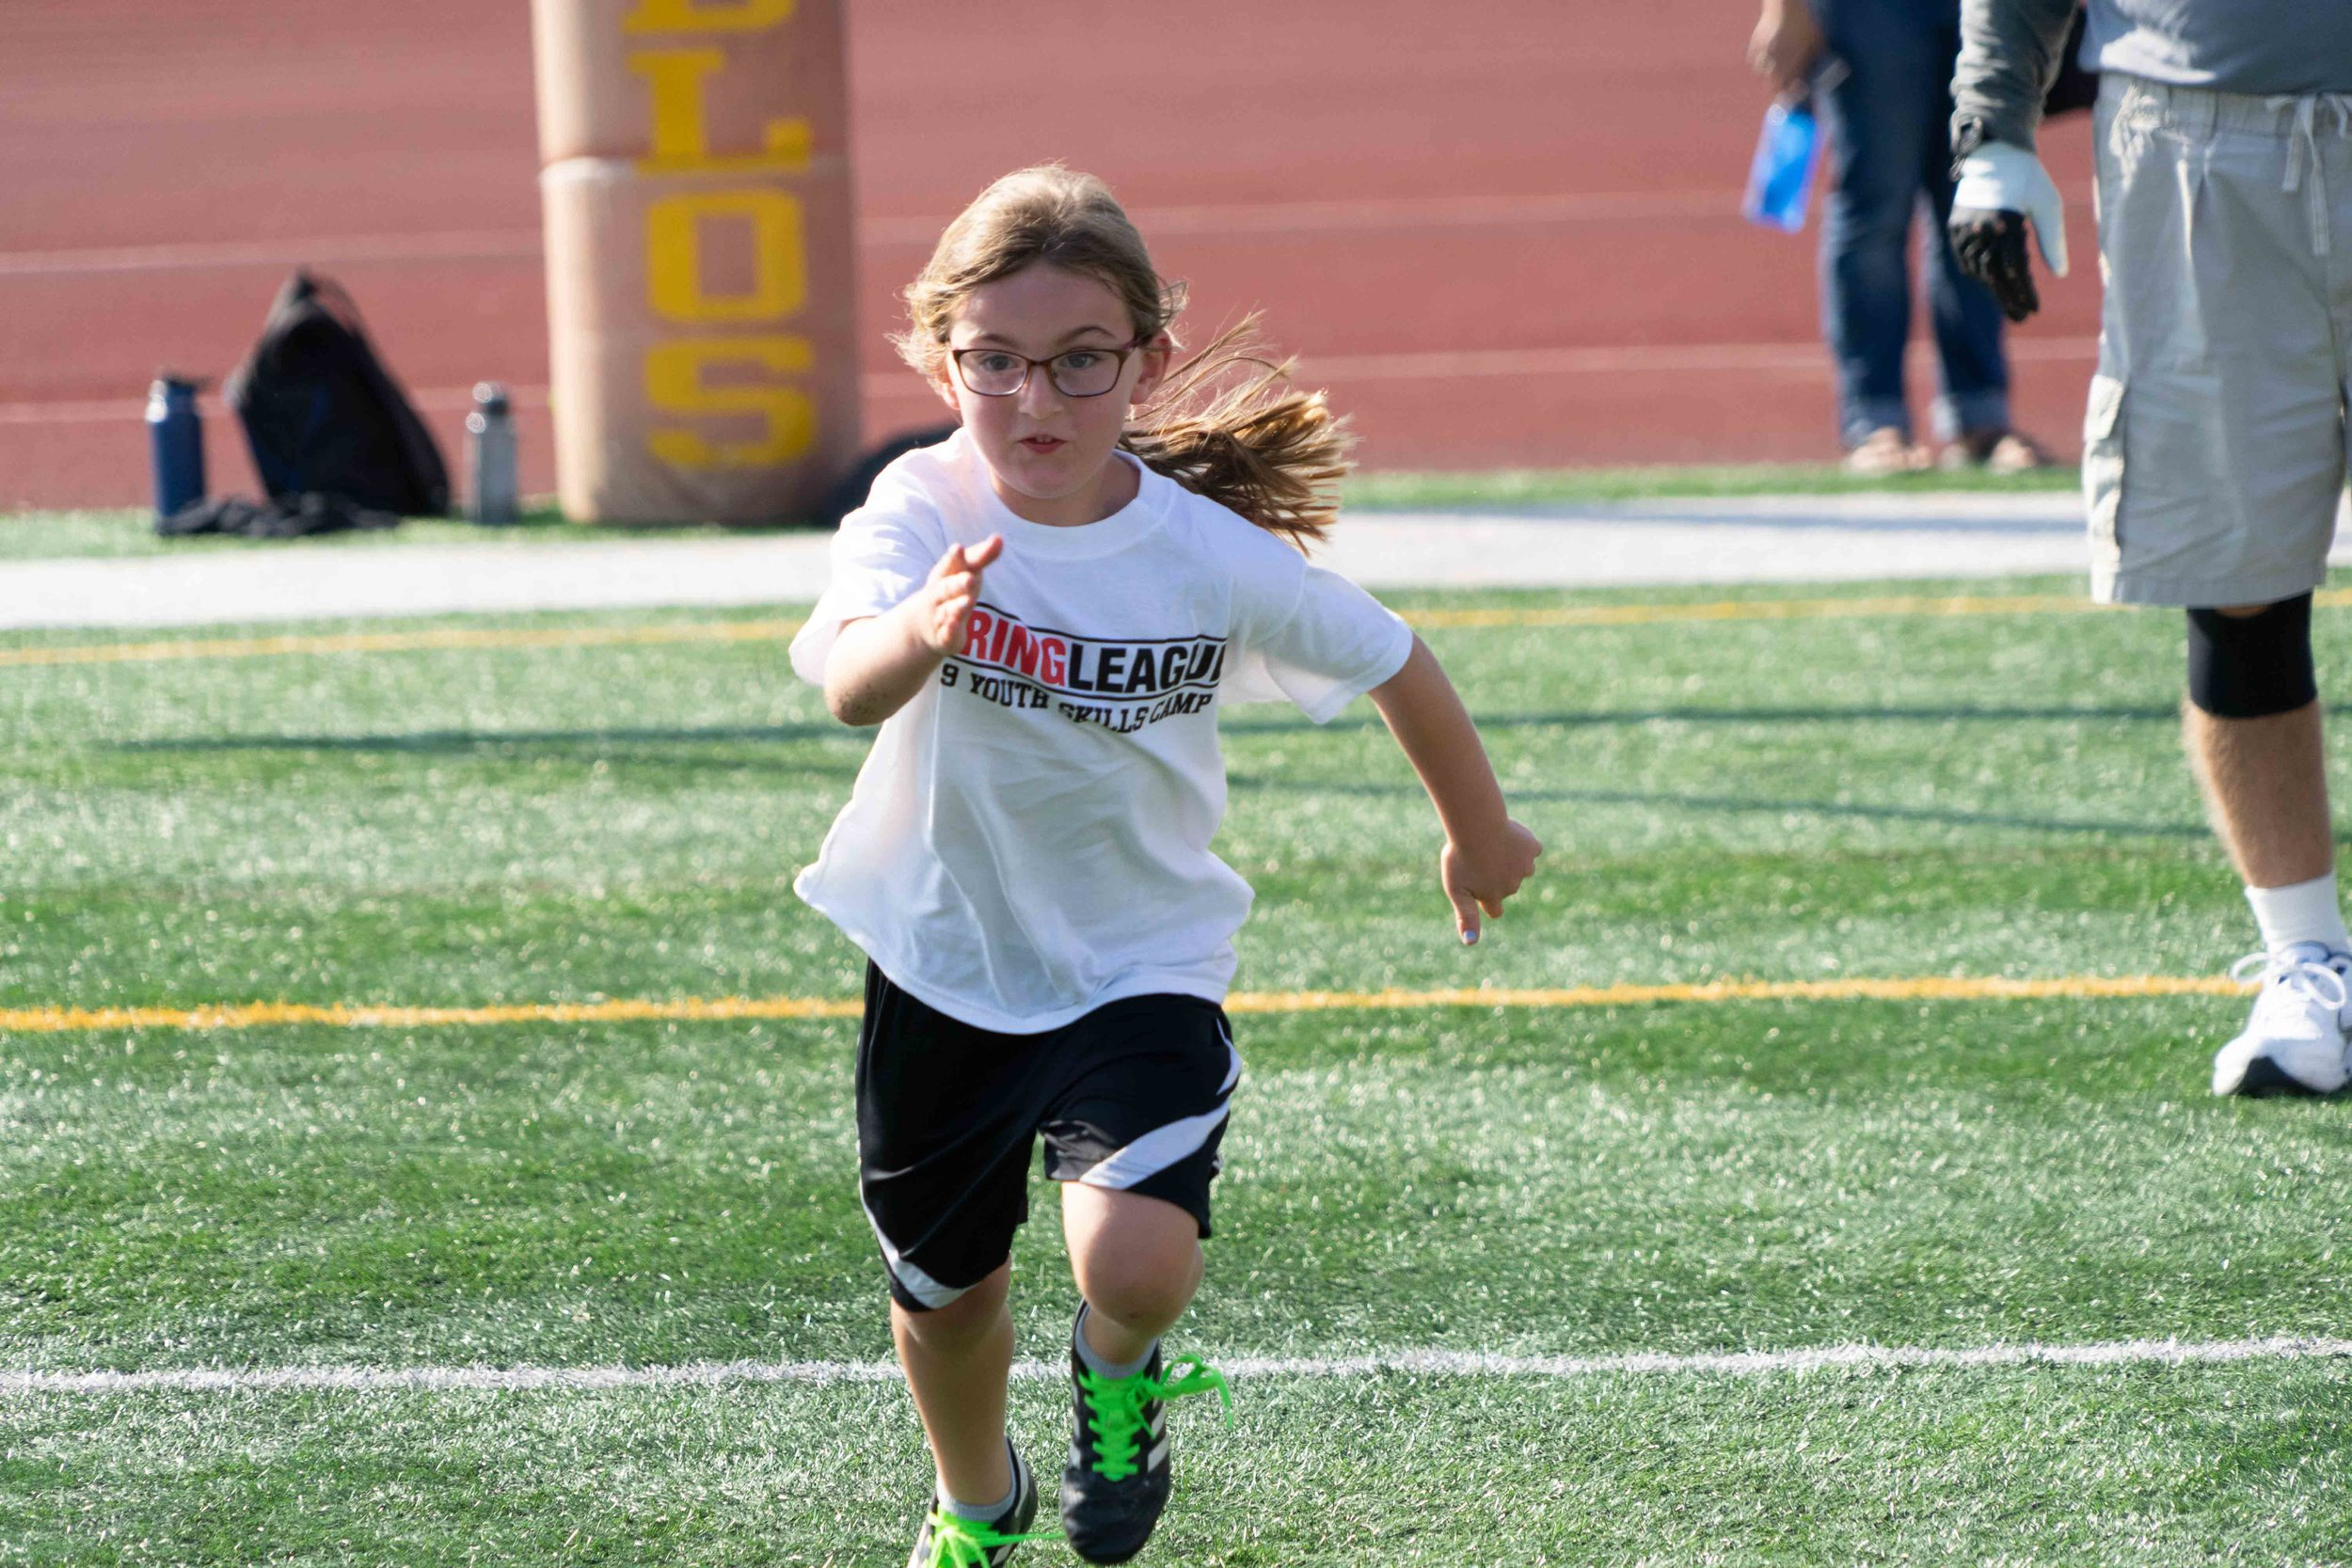 The Spring League Kids Skills Camp-10.jpg